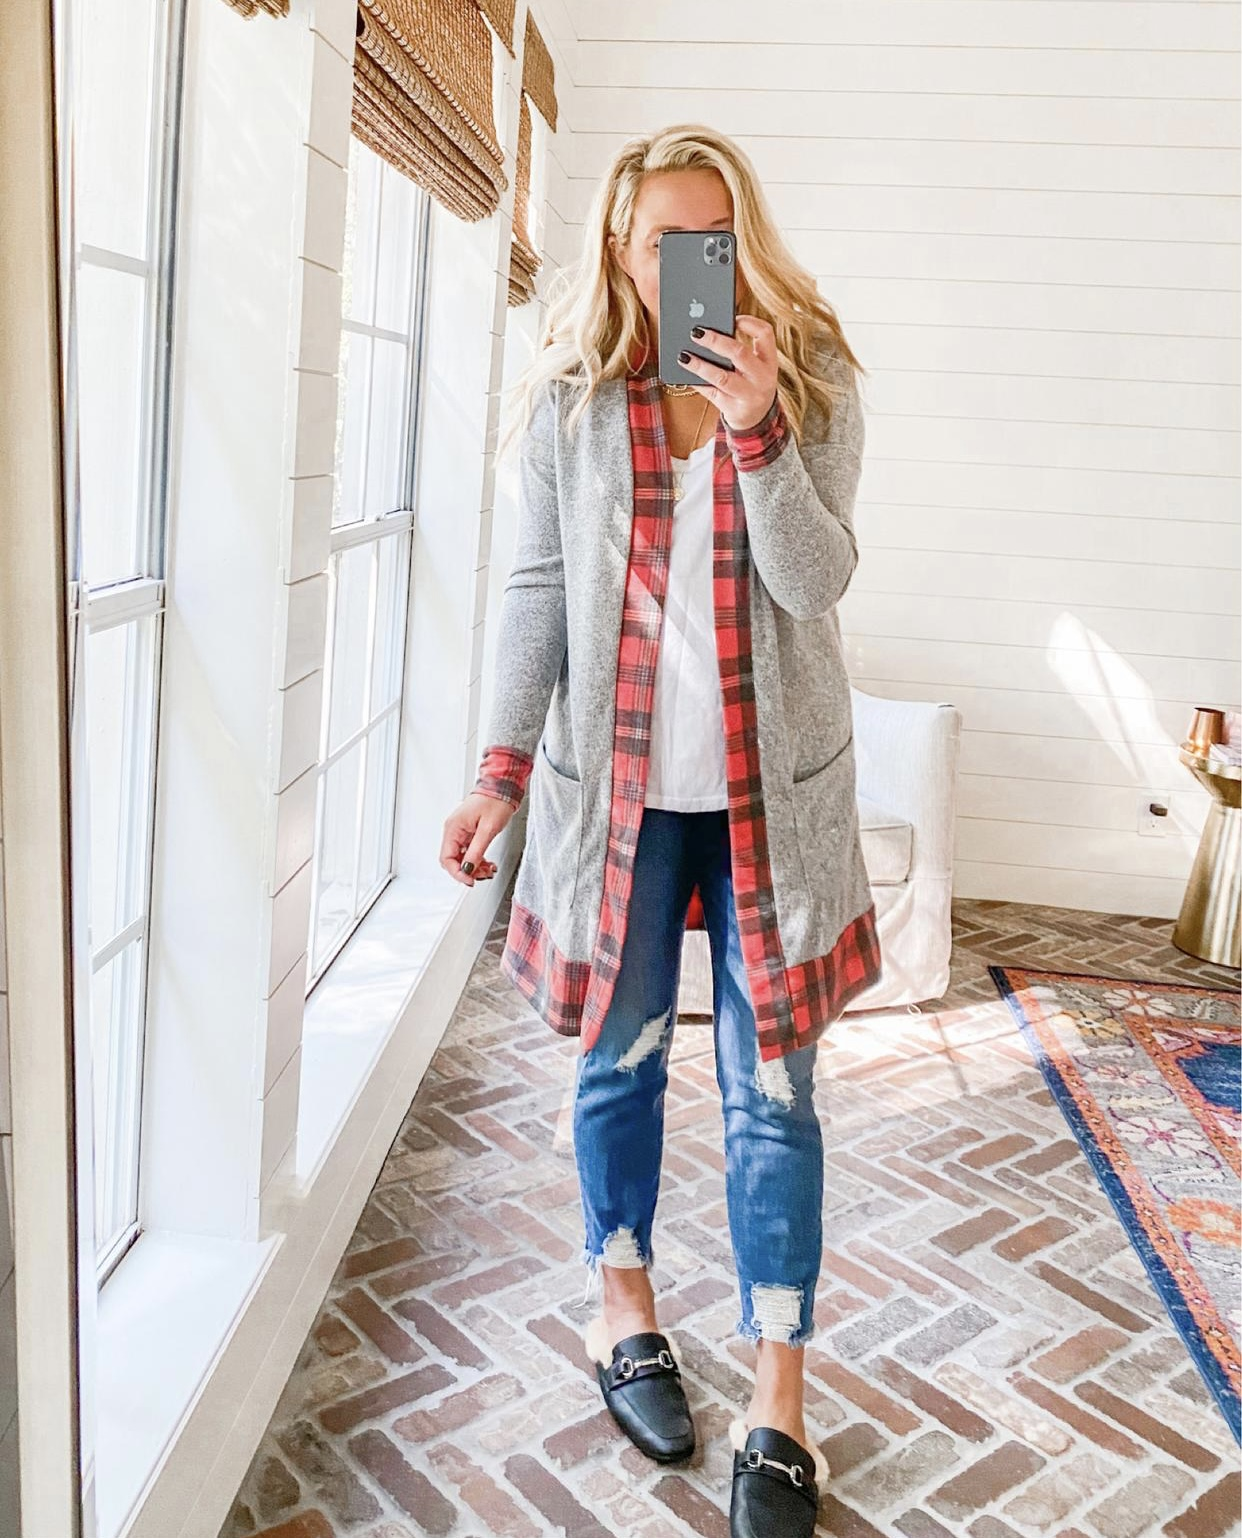 Cute Fall Outfits by popular Houston fashion blog, Fancy Ashley: image of a woman wearing a red plaid and grey cardigan, distressed jeans, and faux fur lined slide mules.